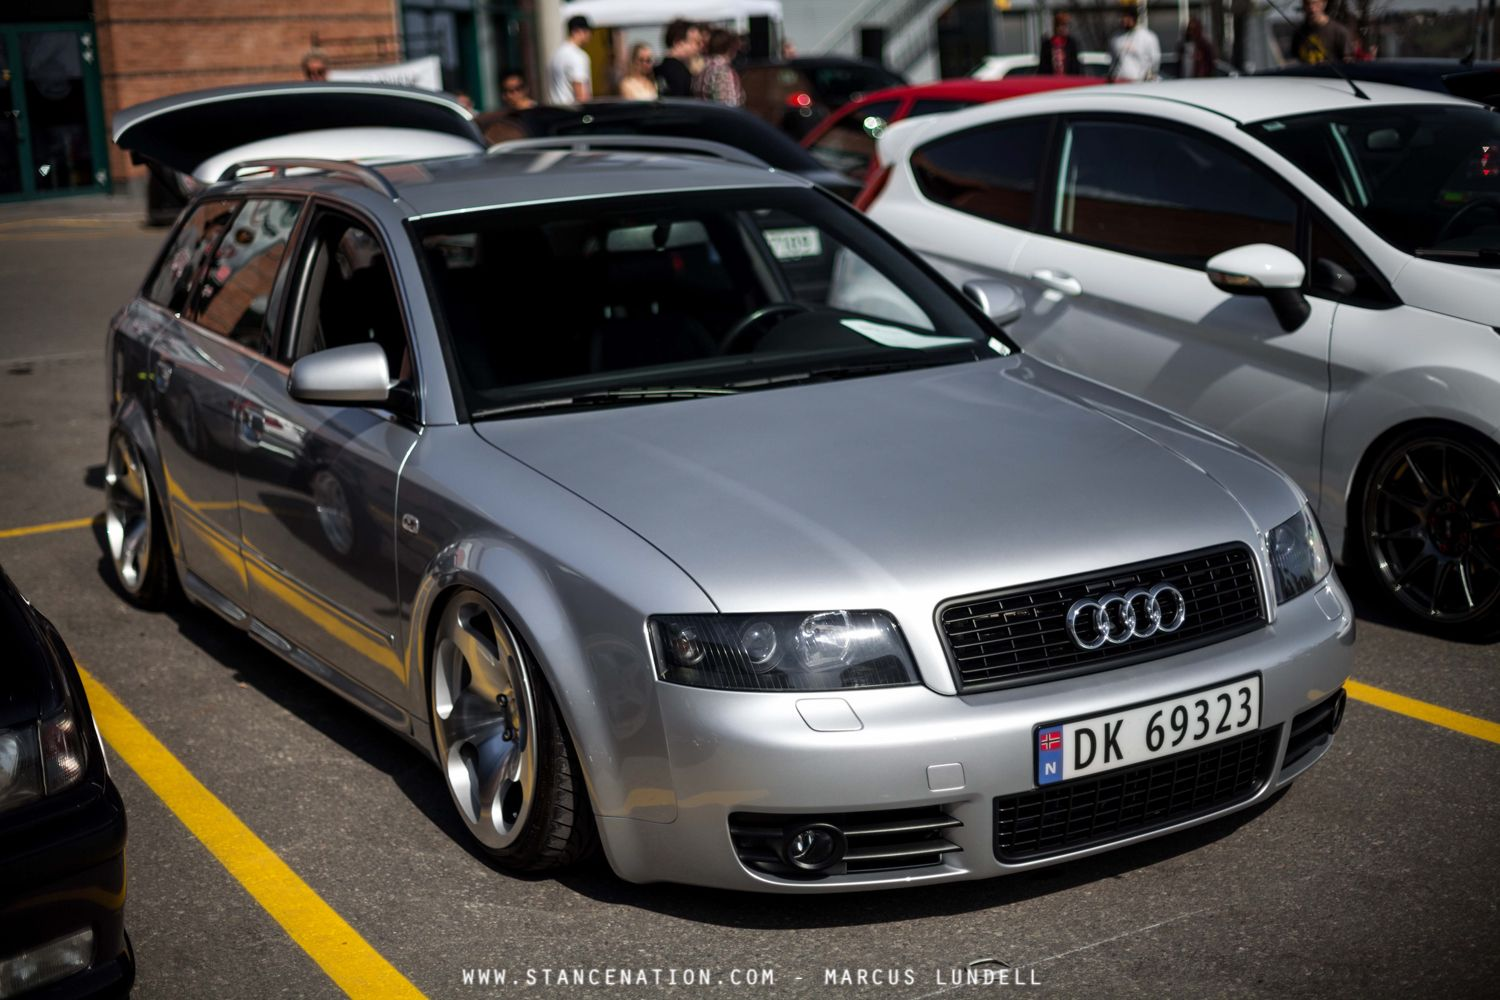 Pin By Ee 2 On Slightly Lowered Vehicles Audi Allroad Audi Wagon Audi A4 Avant